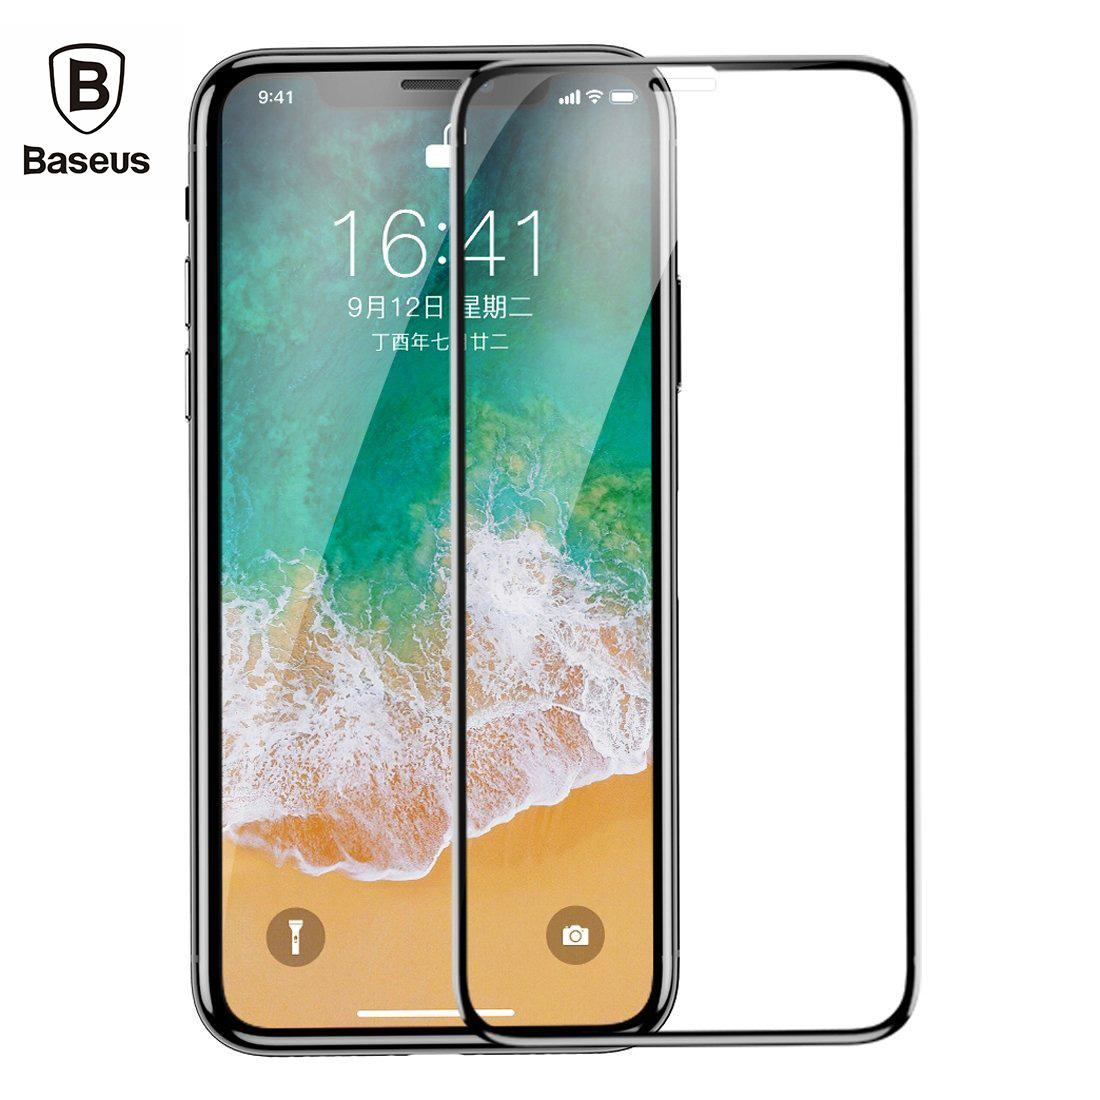 iPhone X/XS/XS Max Glass Screen Protector, Baseus 0.3mm 9H Hardness Full Screen Tempered Glass Protector for iPhone X/XS/XS Max [HD Clear] [Shock Proof] [Anti Fingerprint] [Anti Bubble] [Easy Install]